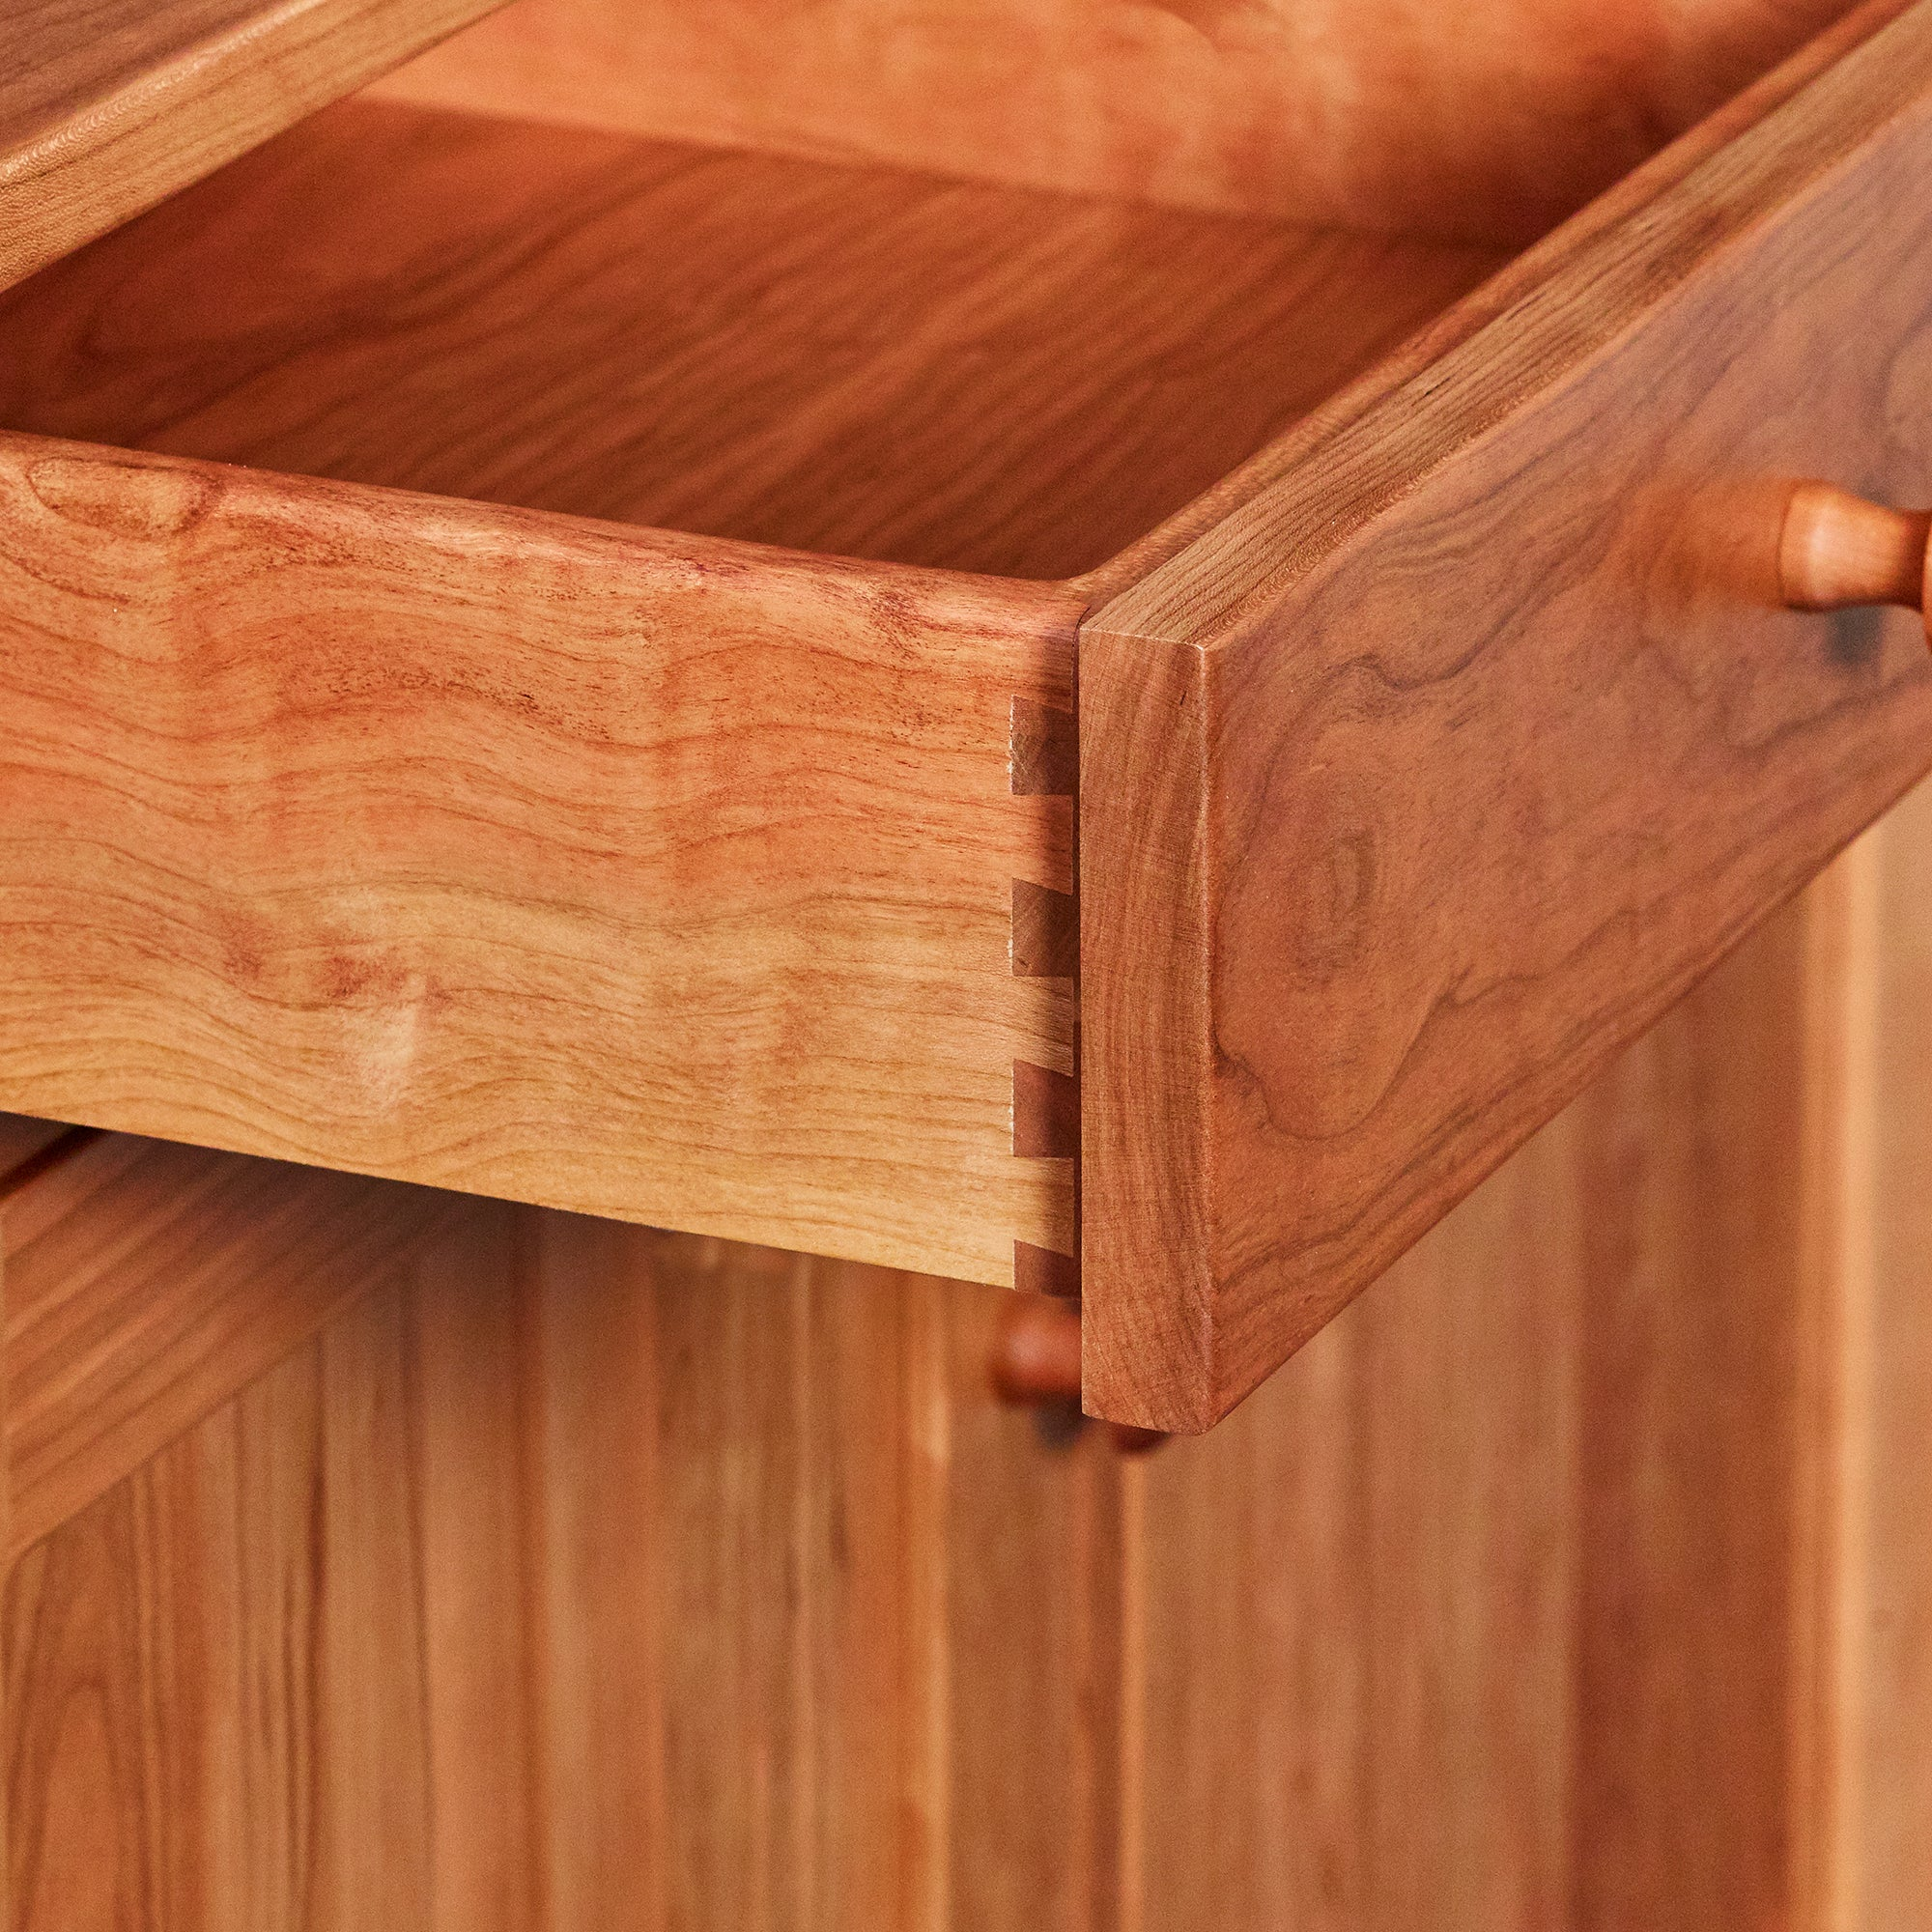 Cherry wood drawer showing dovetail joinery and Shaker knob details